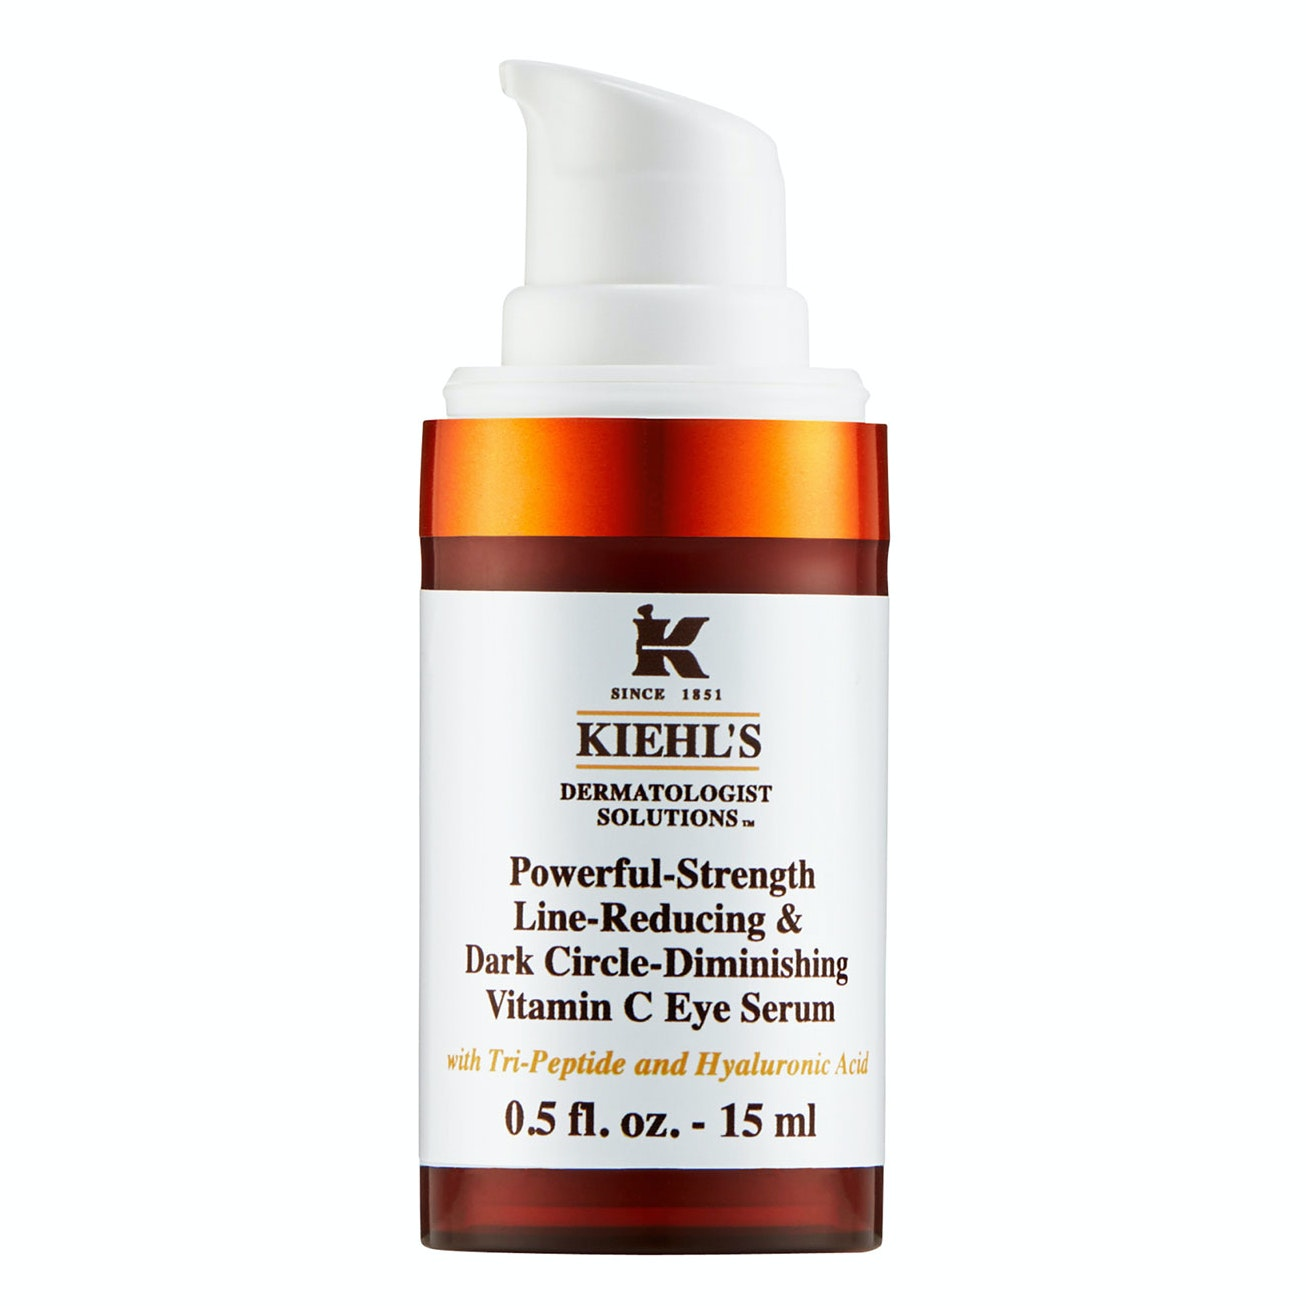 Kiehl's® Powerful-Strength Line-Reducing & Dark Circle-Diminishing Vitamin C Eye Serum